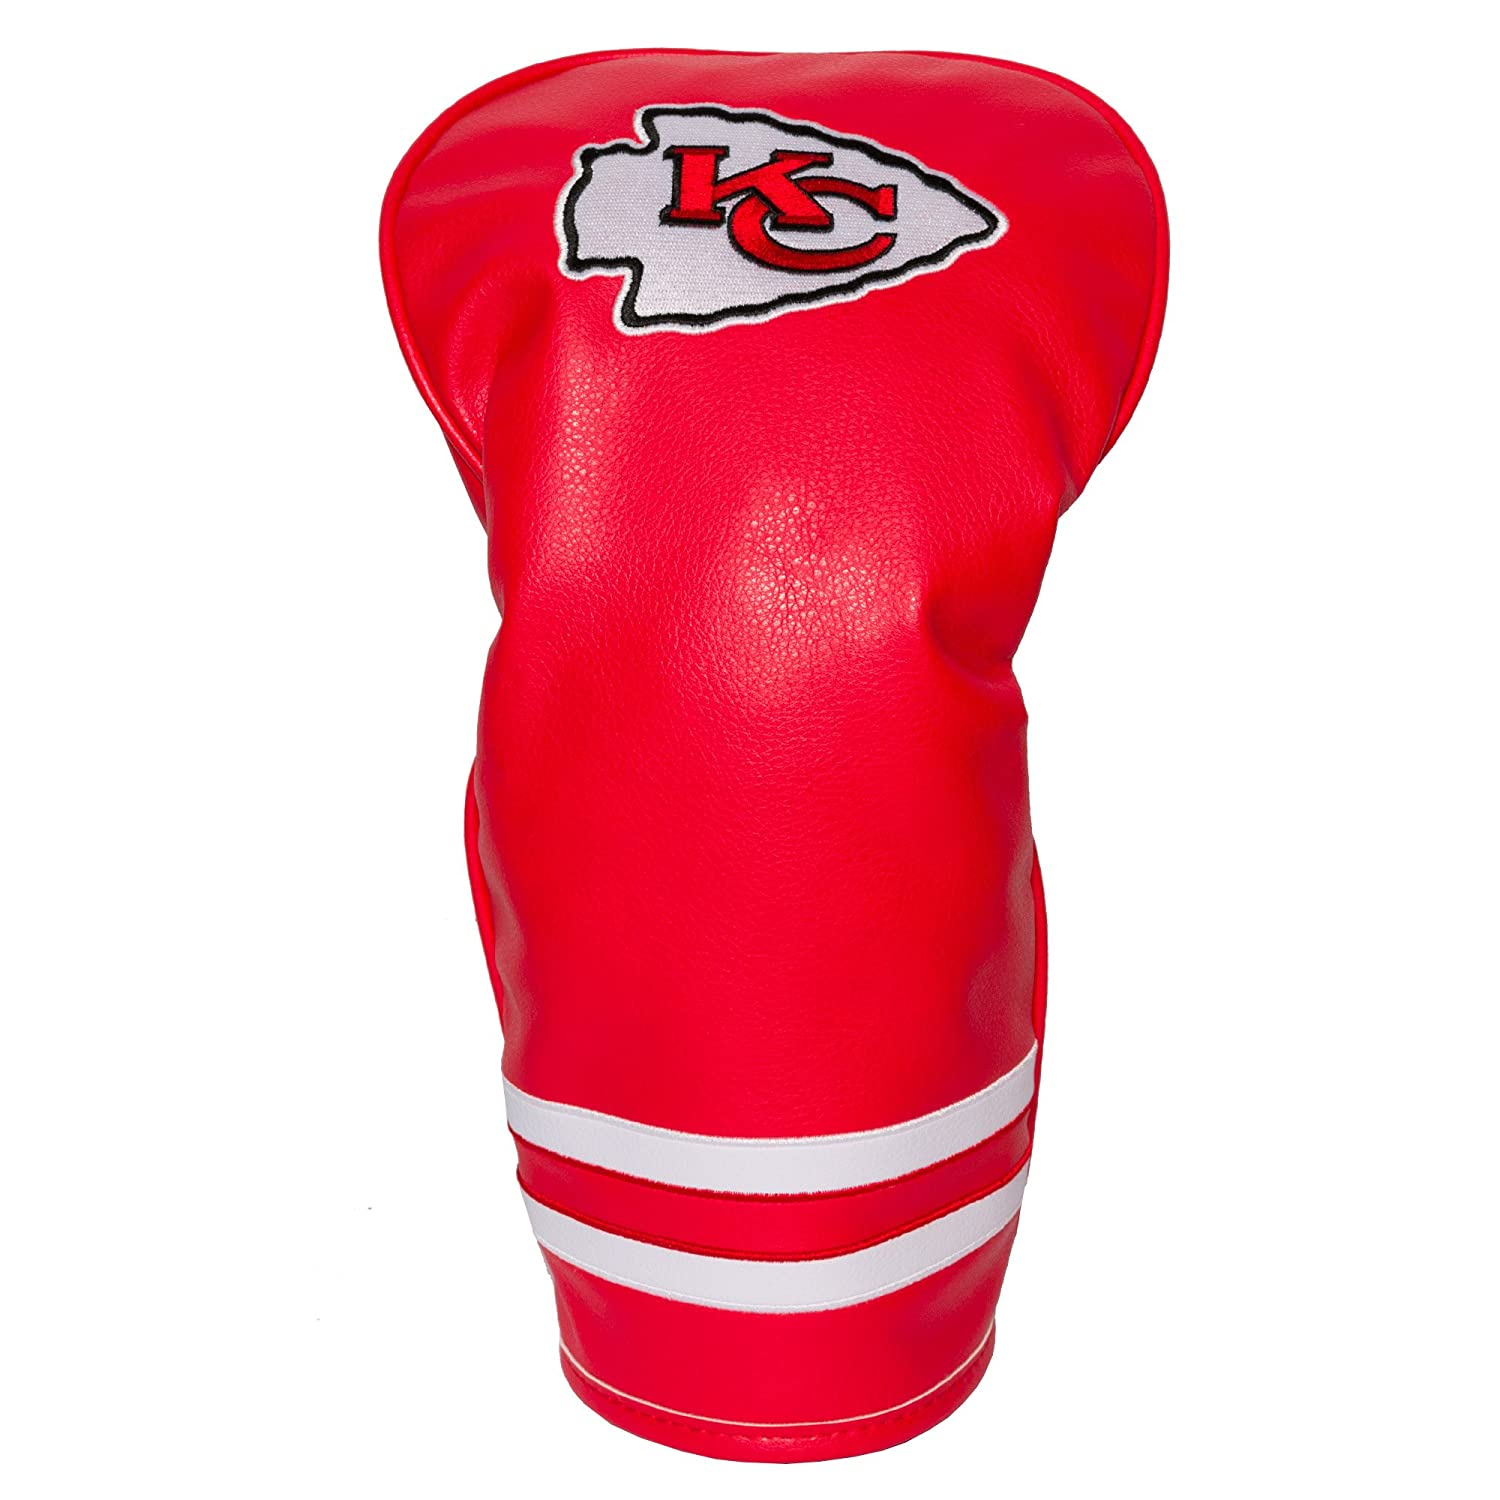 9eb0bb56 Details about NFL Kansas City Chiefs Golf Vintage Driver Head Cover